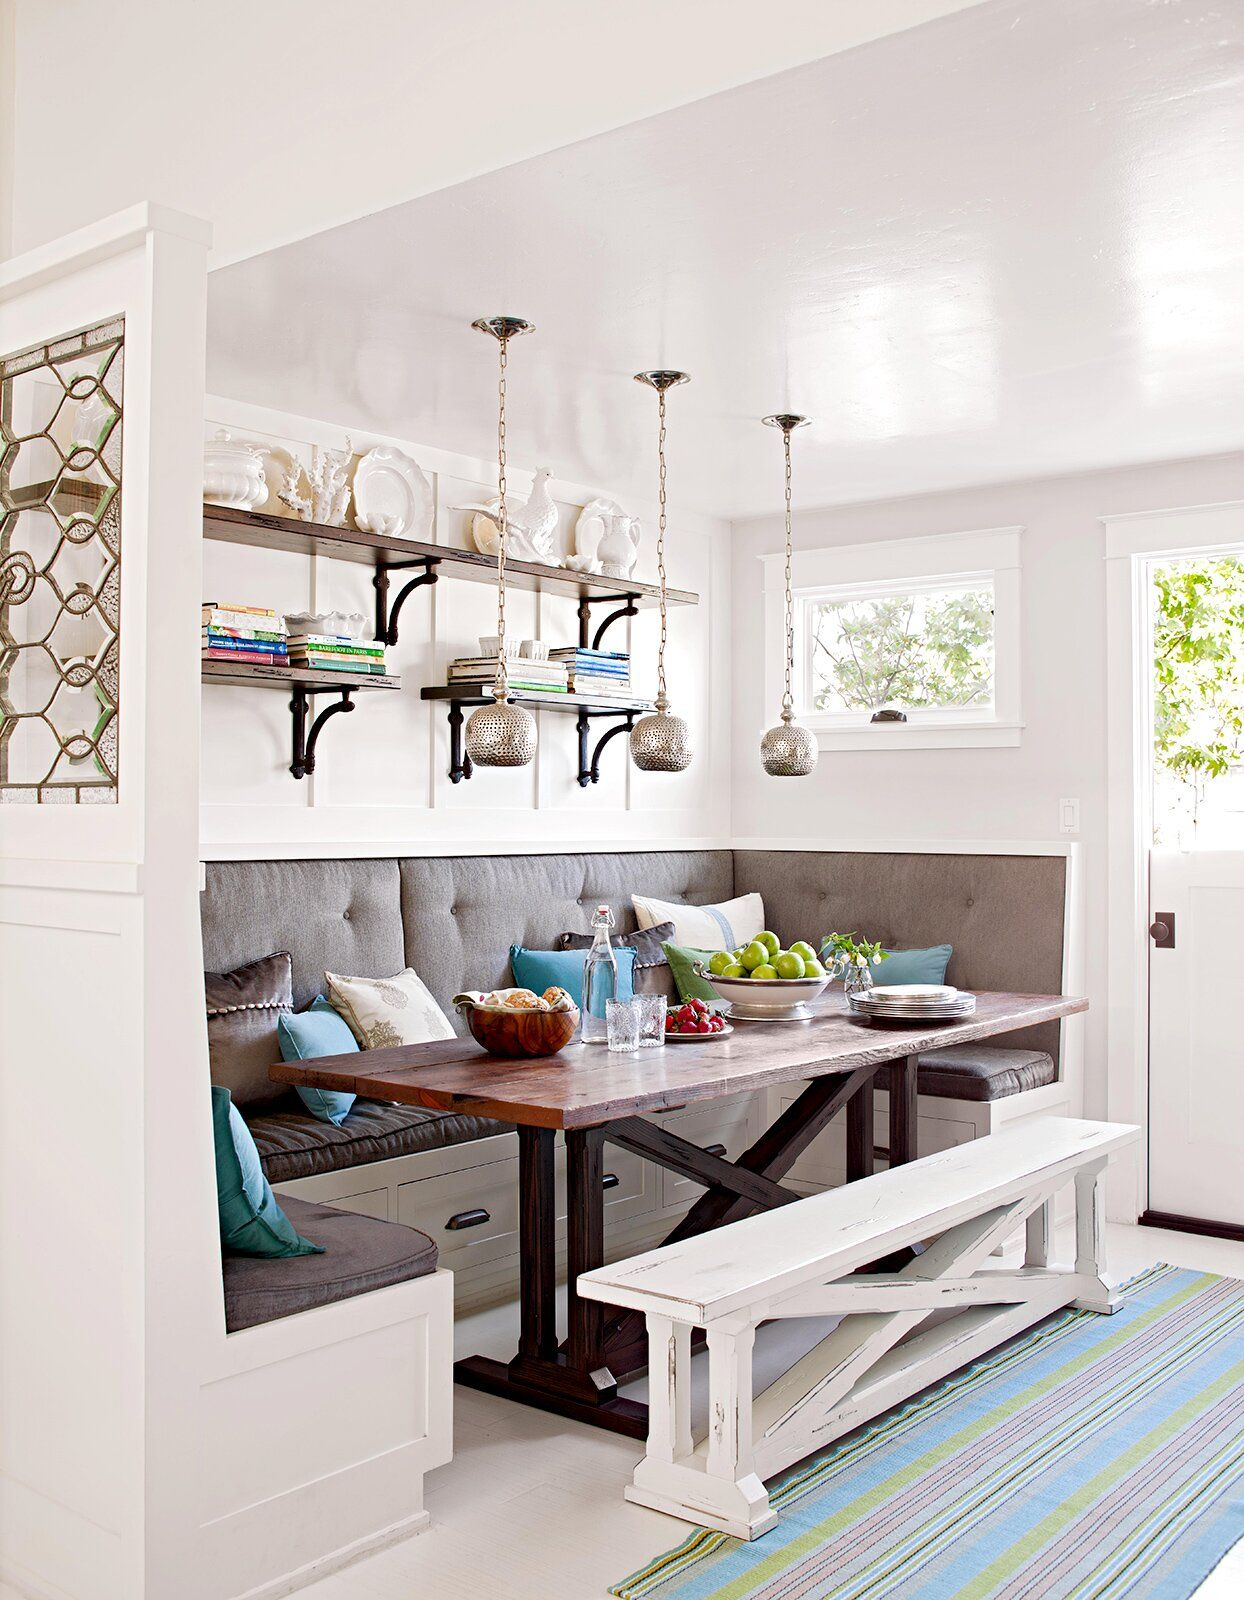 15 Small Dining Room Ideas to Make the Most of Your Space